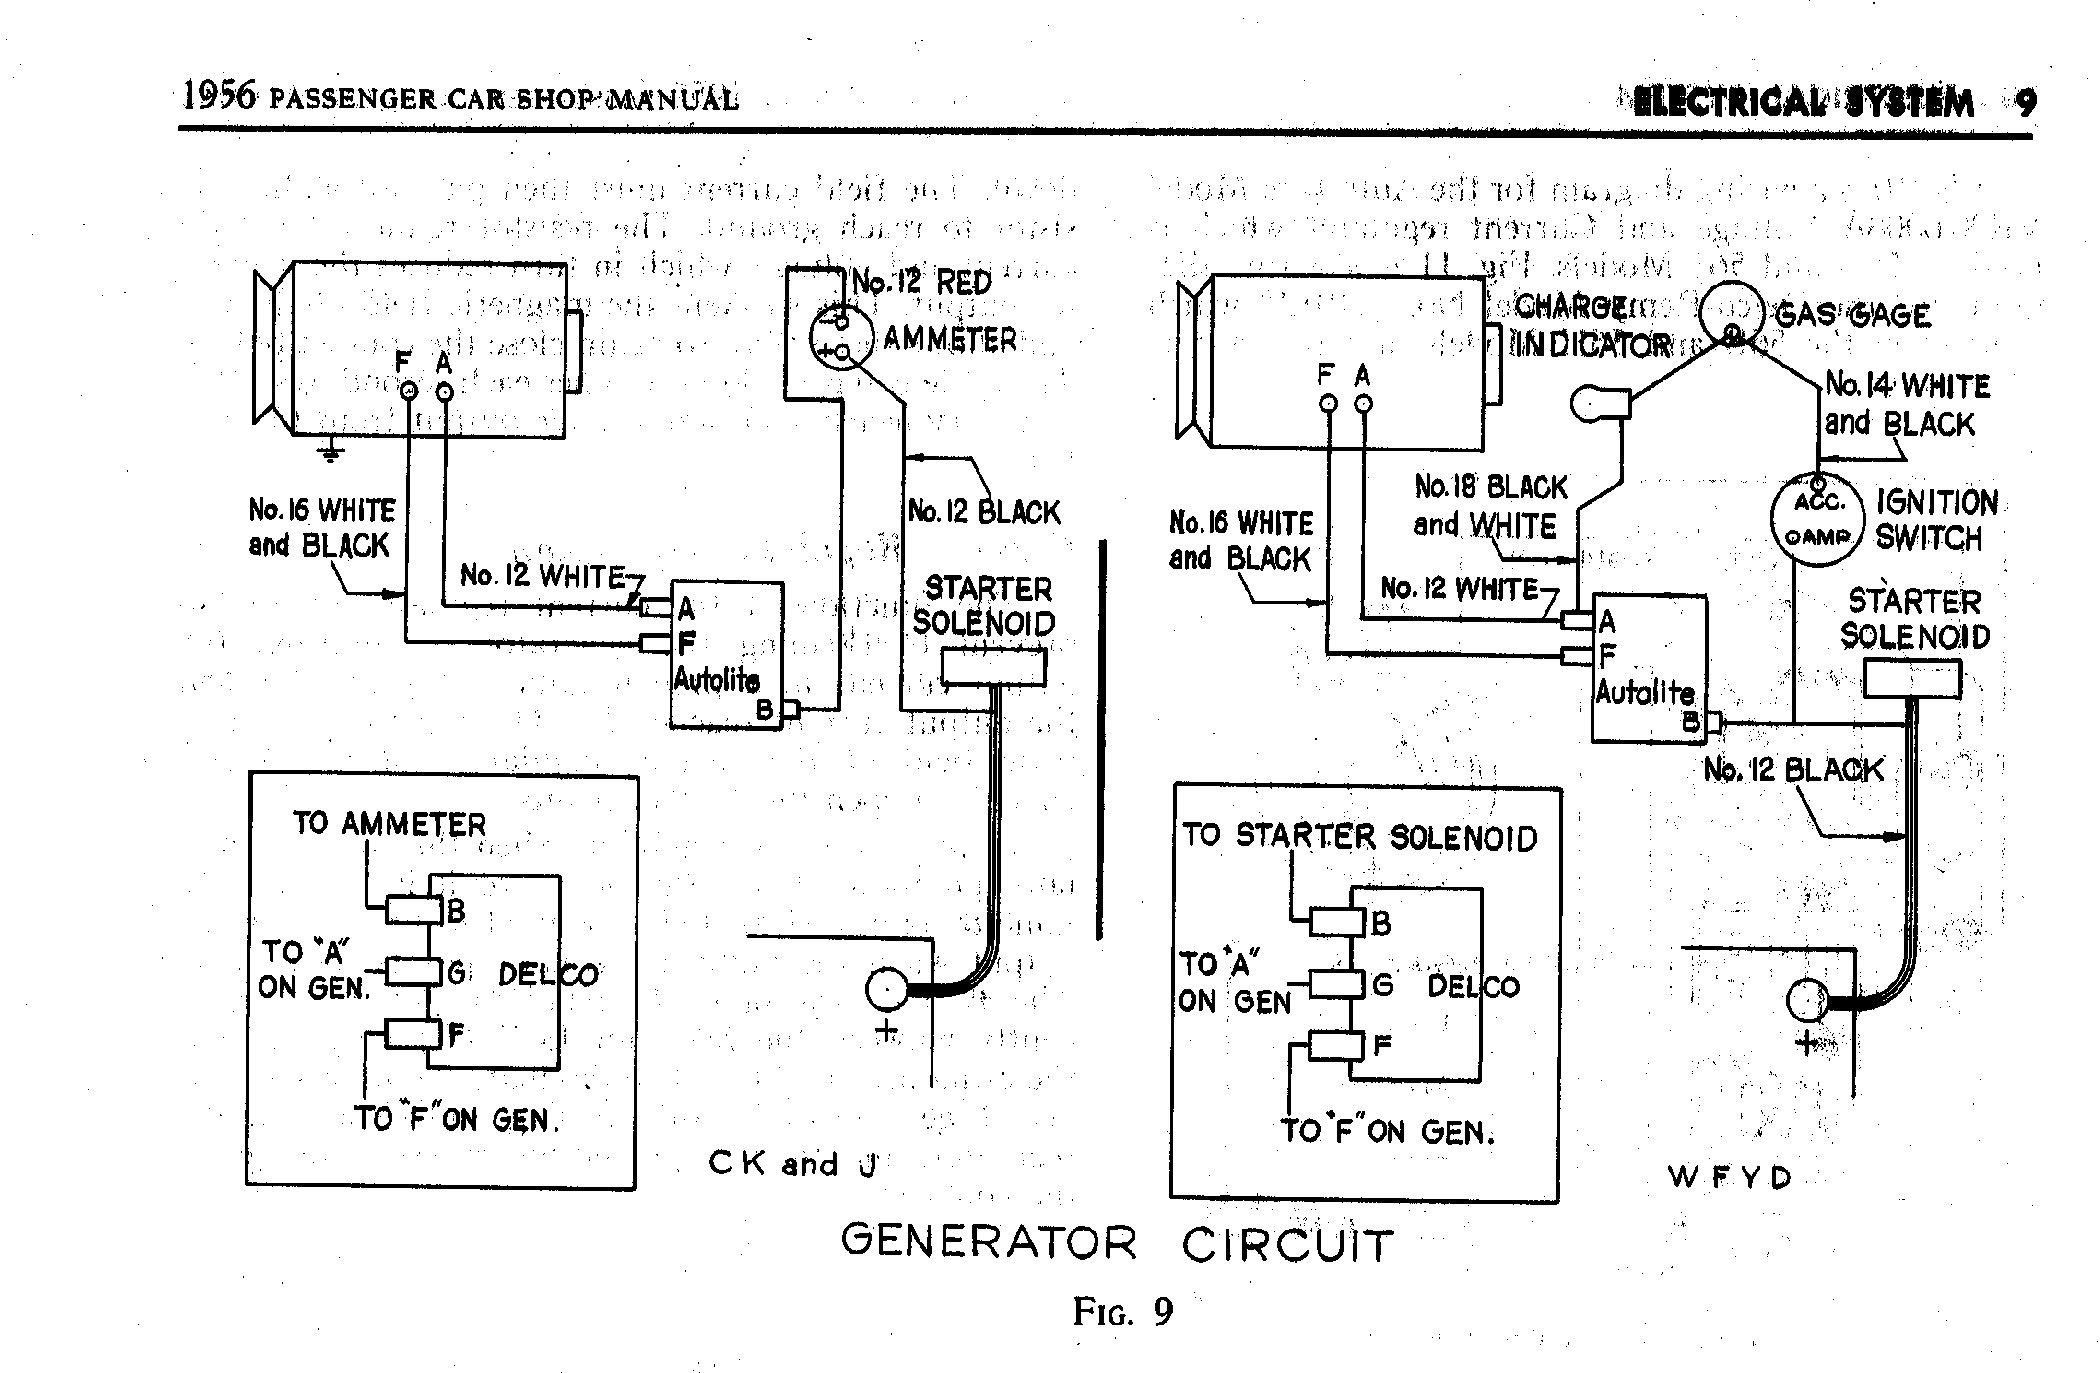 New Wiring Diagram Hitachi Starter Generator Diagram Diagramsample Diagramtemplate Wiringdiagram Diagramchart Diagram Electrical Wiring Diagram Generation